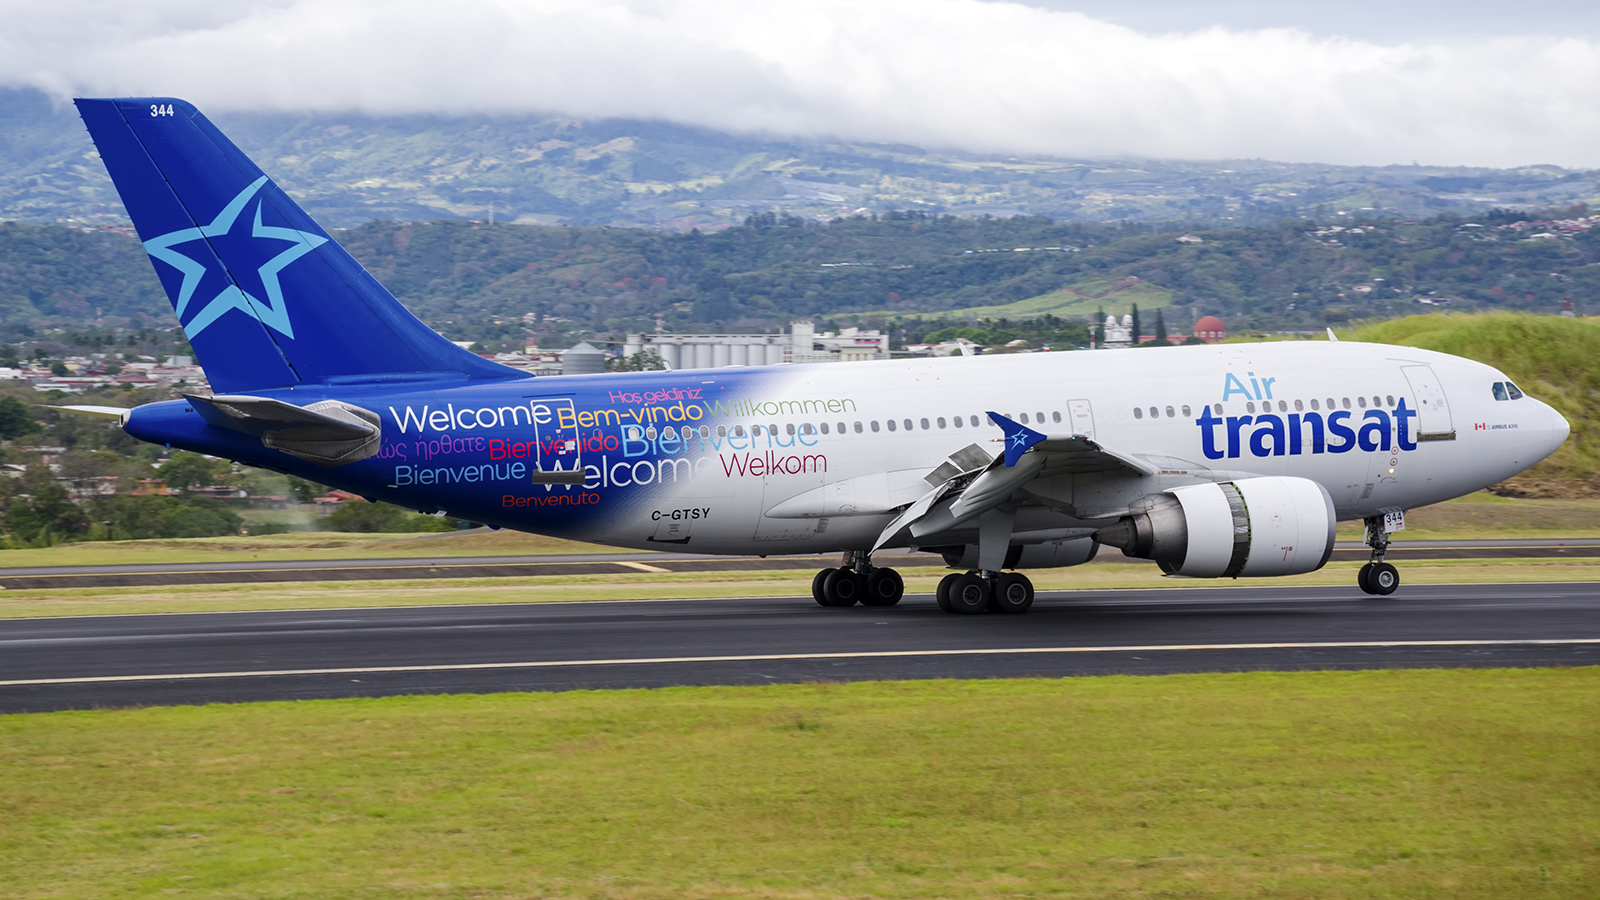 Click image for larger version.  Name:AirTransat_C-GTSY_19JAN18_1200_profile.jpg Views:21 Size:887.2 KB ID:13280